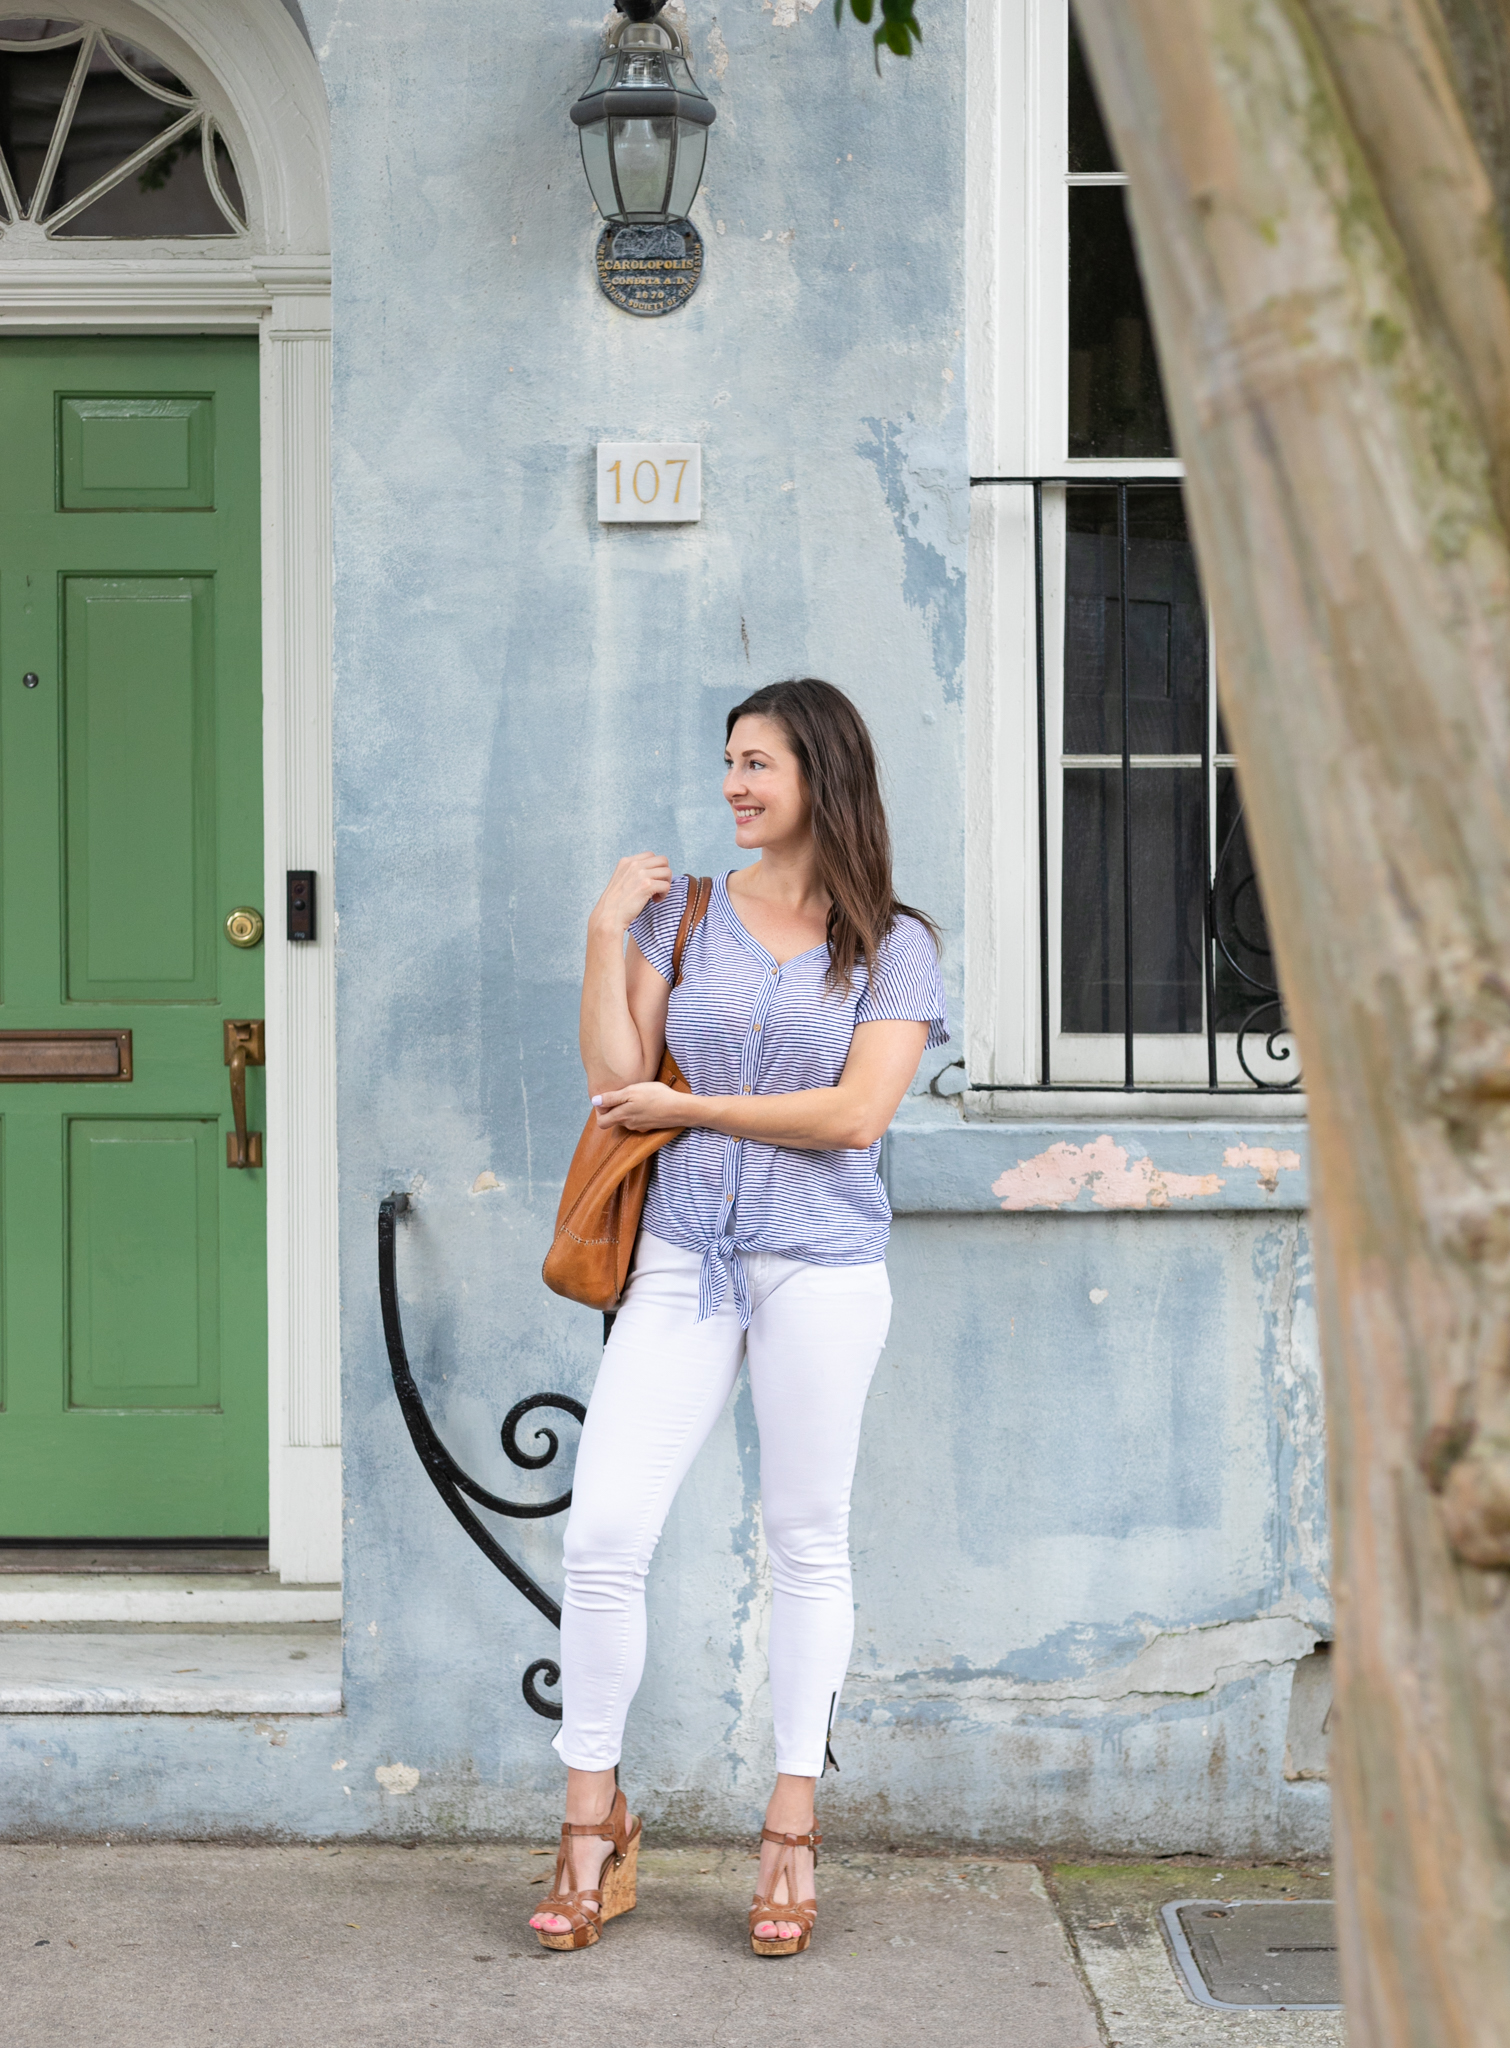 Easy poses that will flatter your body type for the woman entrepreneur branding and lifestyle photographer Vision Balm in Charleston, SC. Branding and lifestyle photo shoot woman entrepreneur.